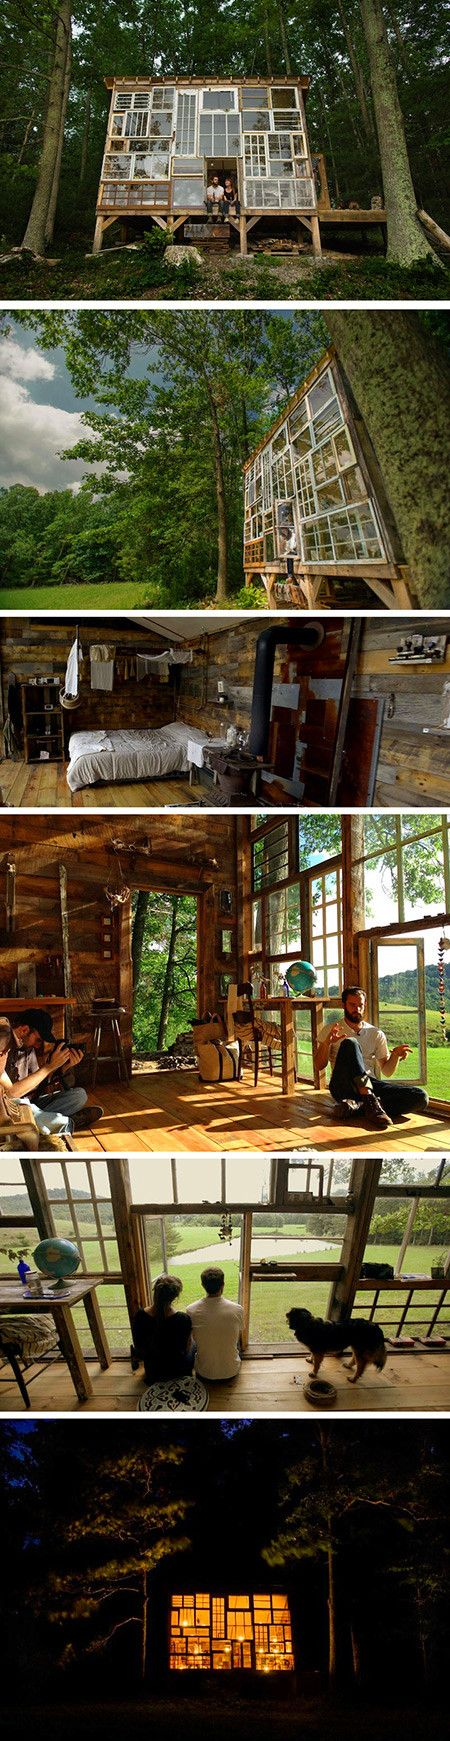 6 Pictures of a Beautiful Cabin in the Woods Built for $500, Made from Discarded Windows - TechEBlog